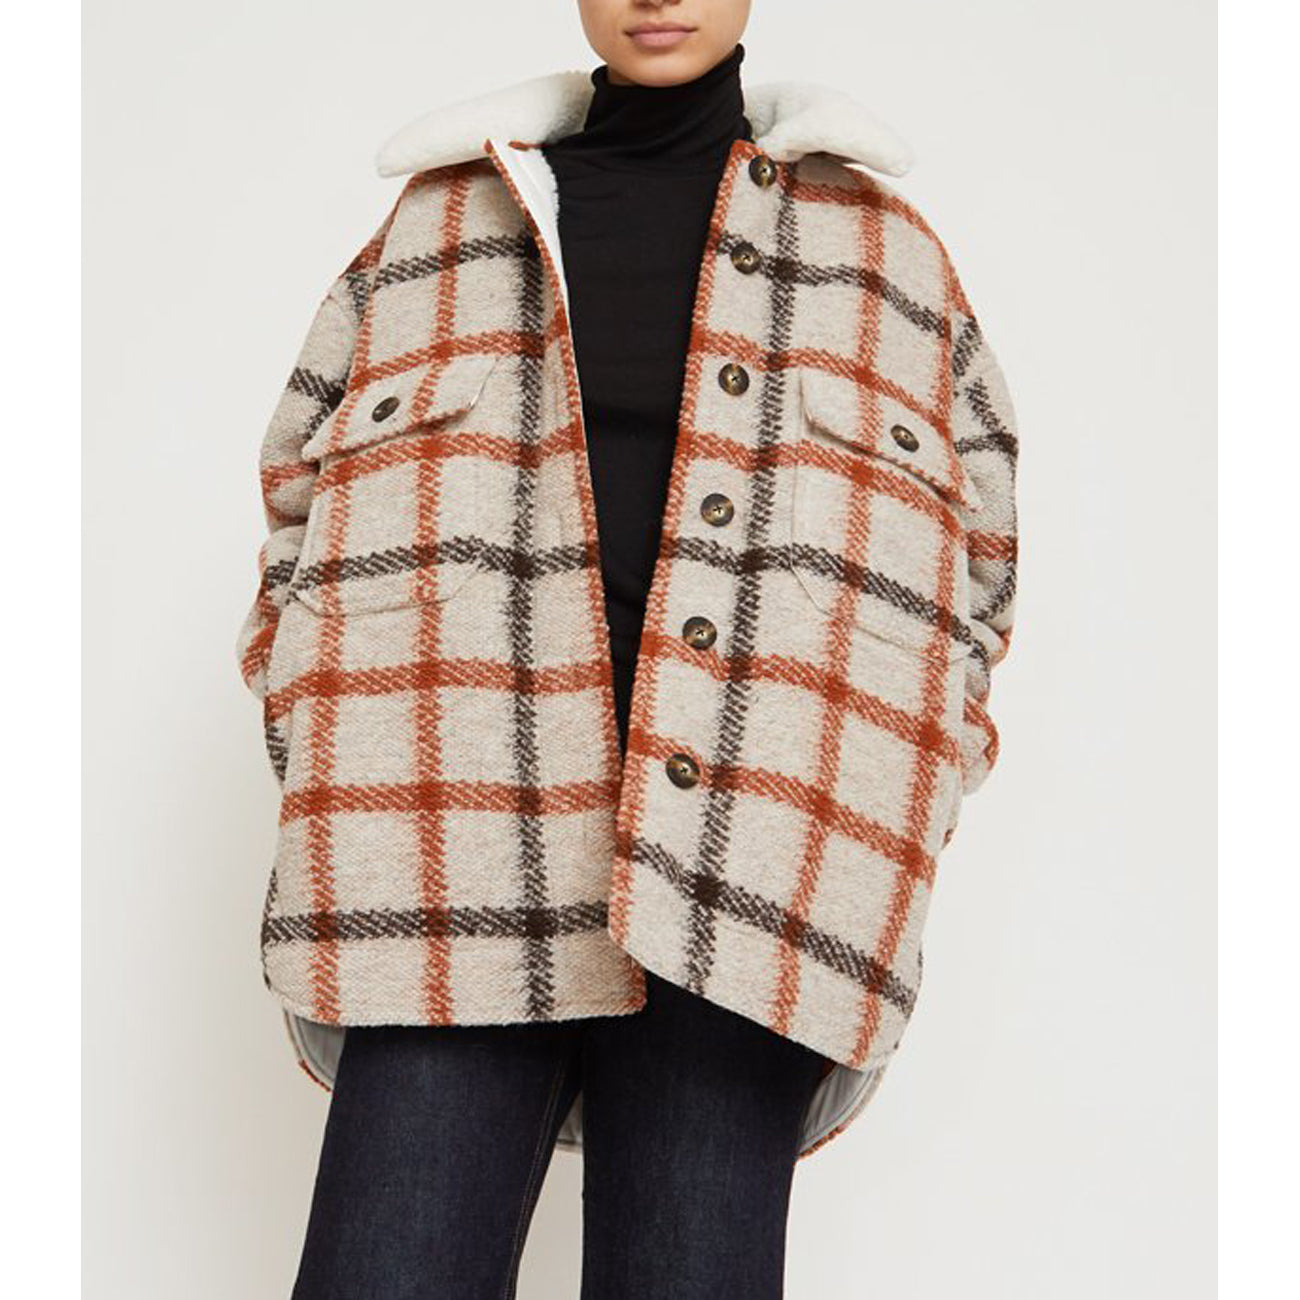 wilson jacket in natural fleece lined plaid